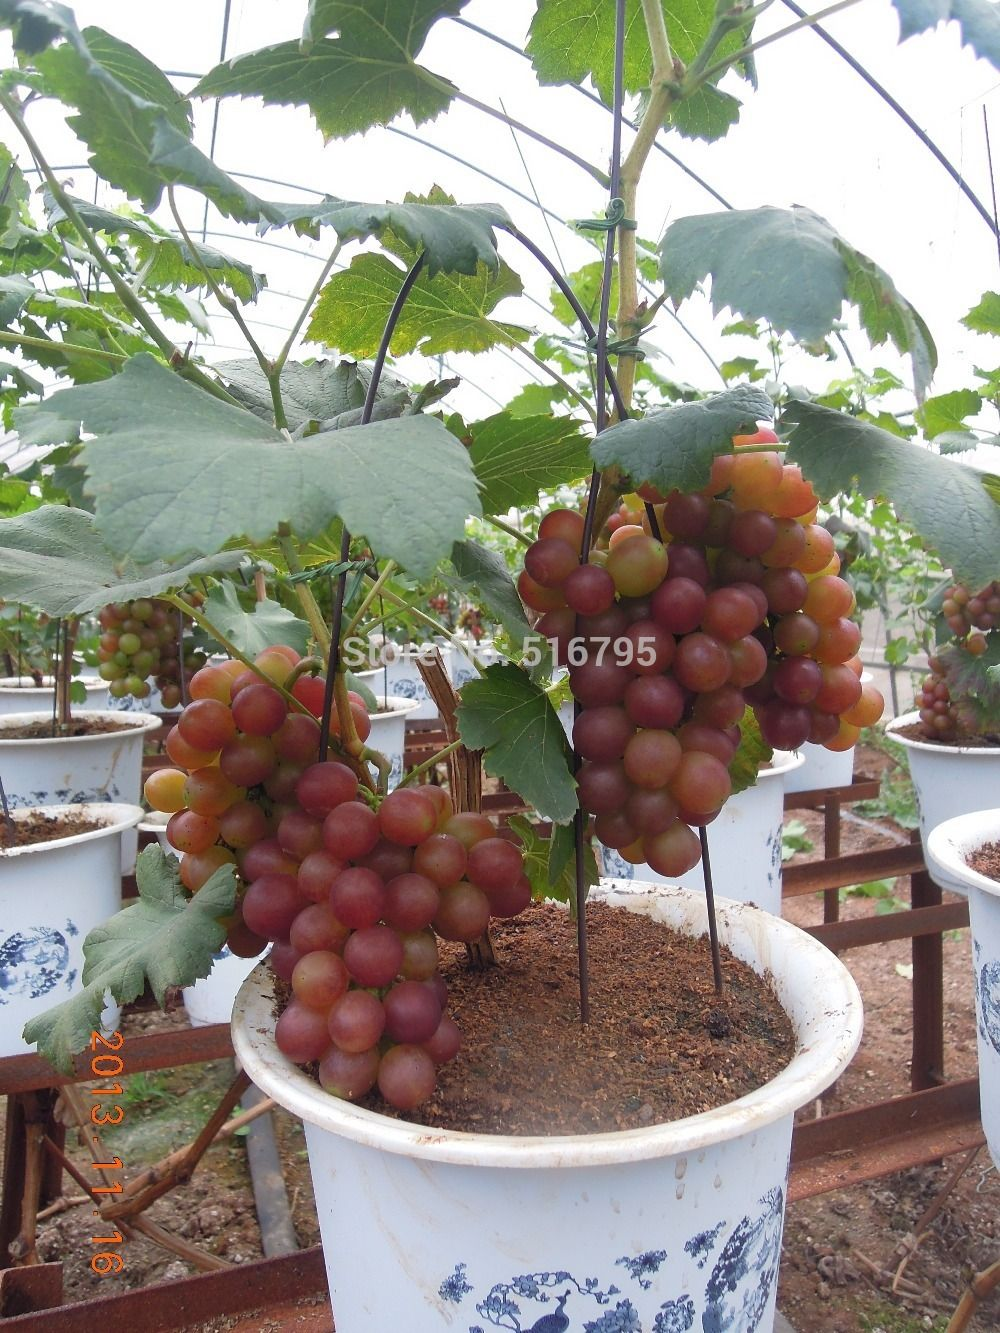 bonsai red grapes seeds pot dwarf fruit home garden climbing tree rapid growth variety - Trees For Home Garden